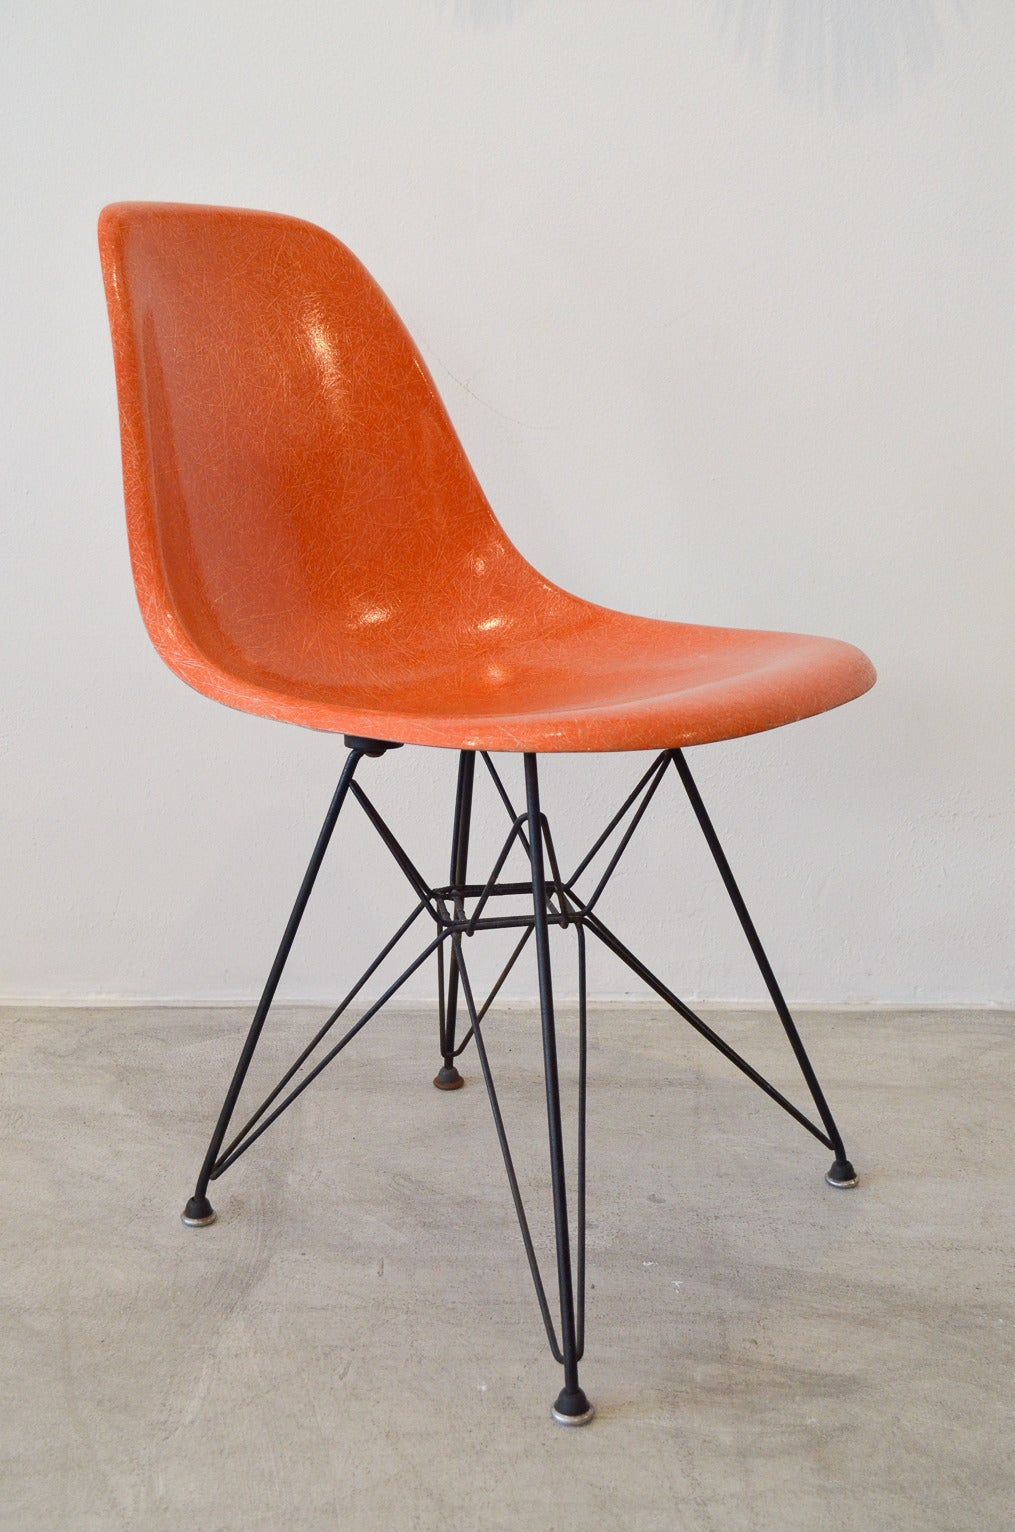 eames dsr fiberglass chair with wire base at 1stdibs. Black Bedroom Furniture Sets. Home Design Ideas